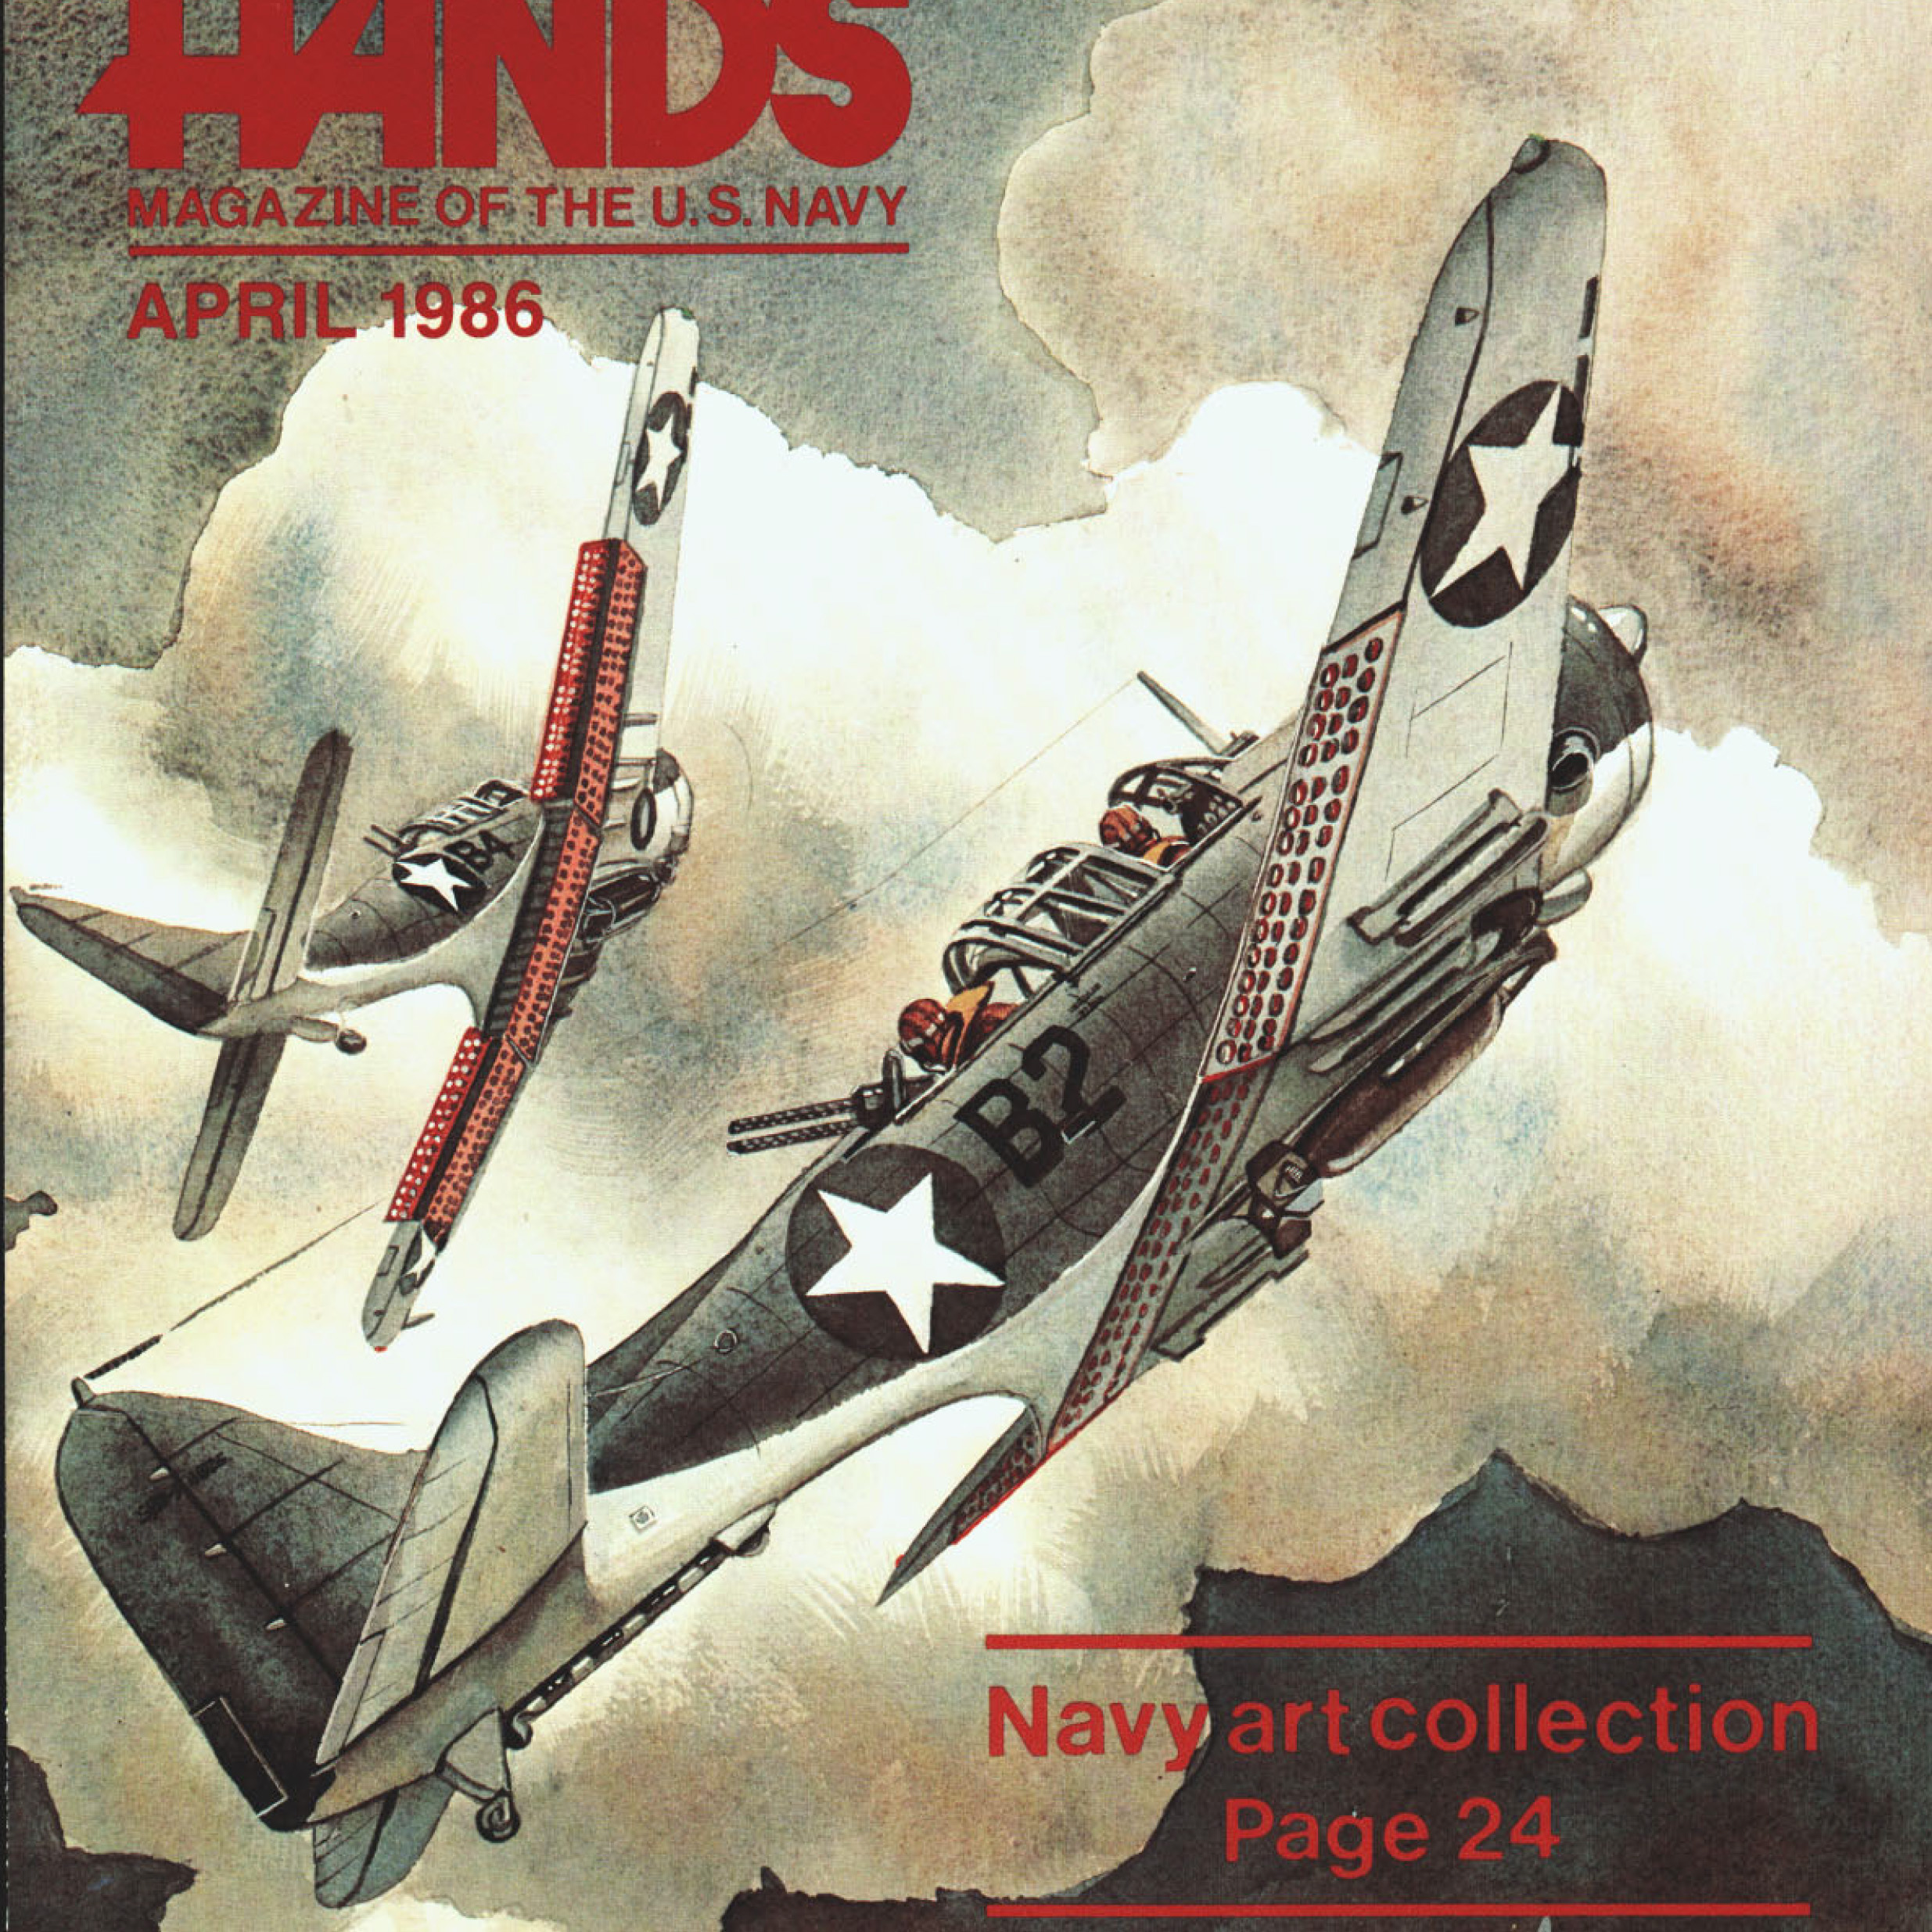 Image of vintage magazine artwork